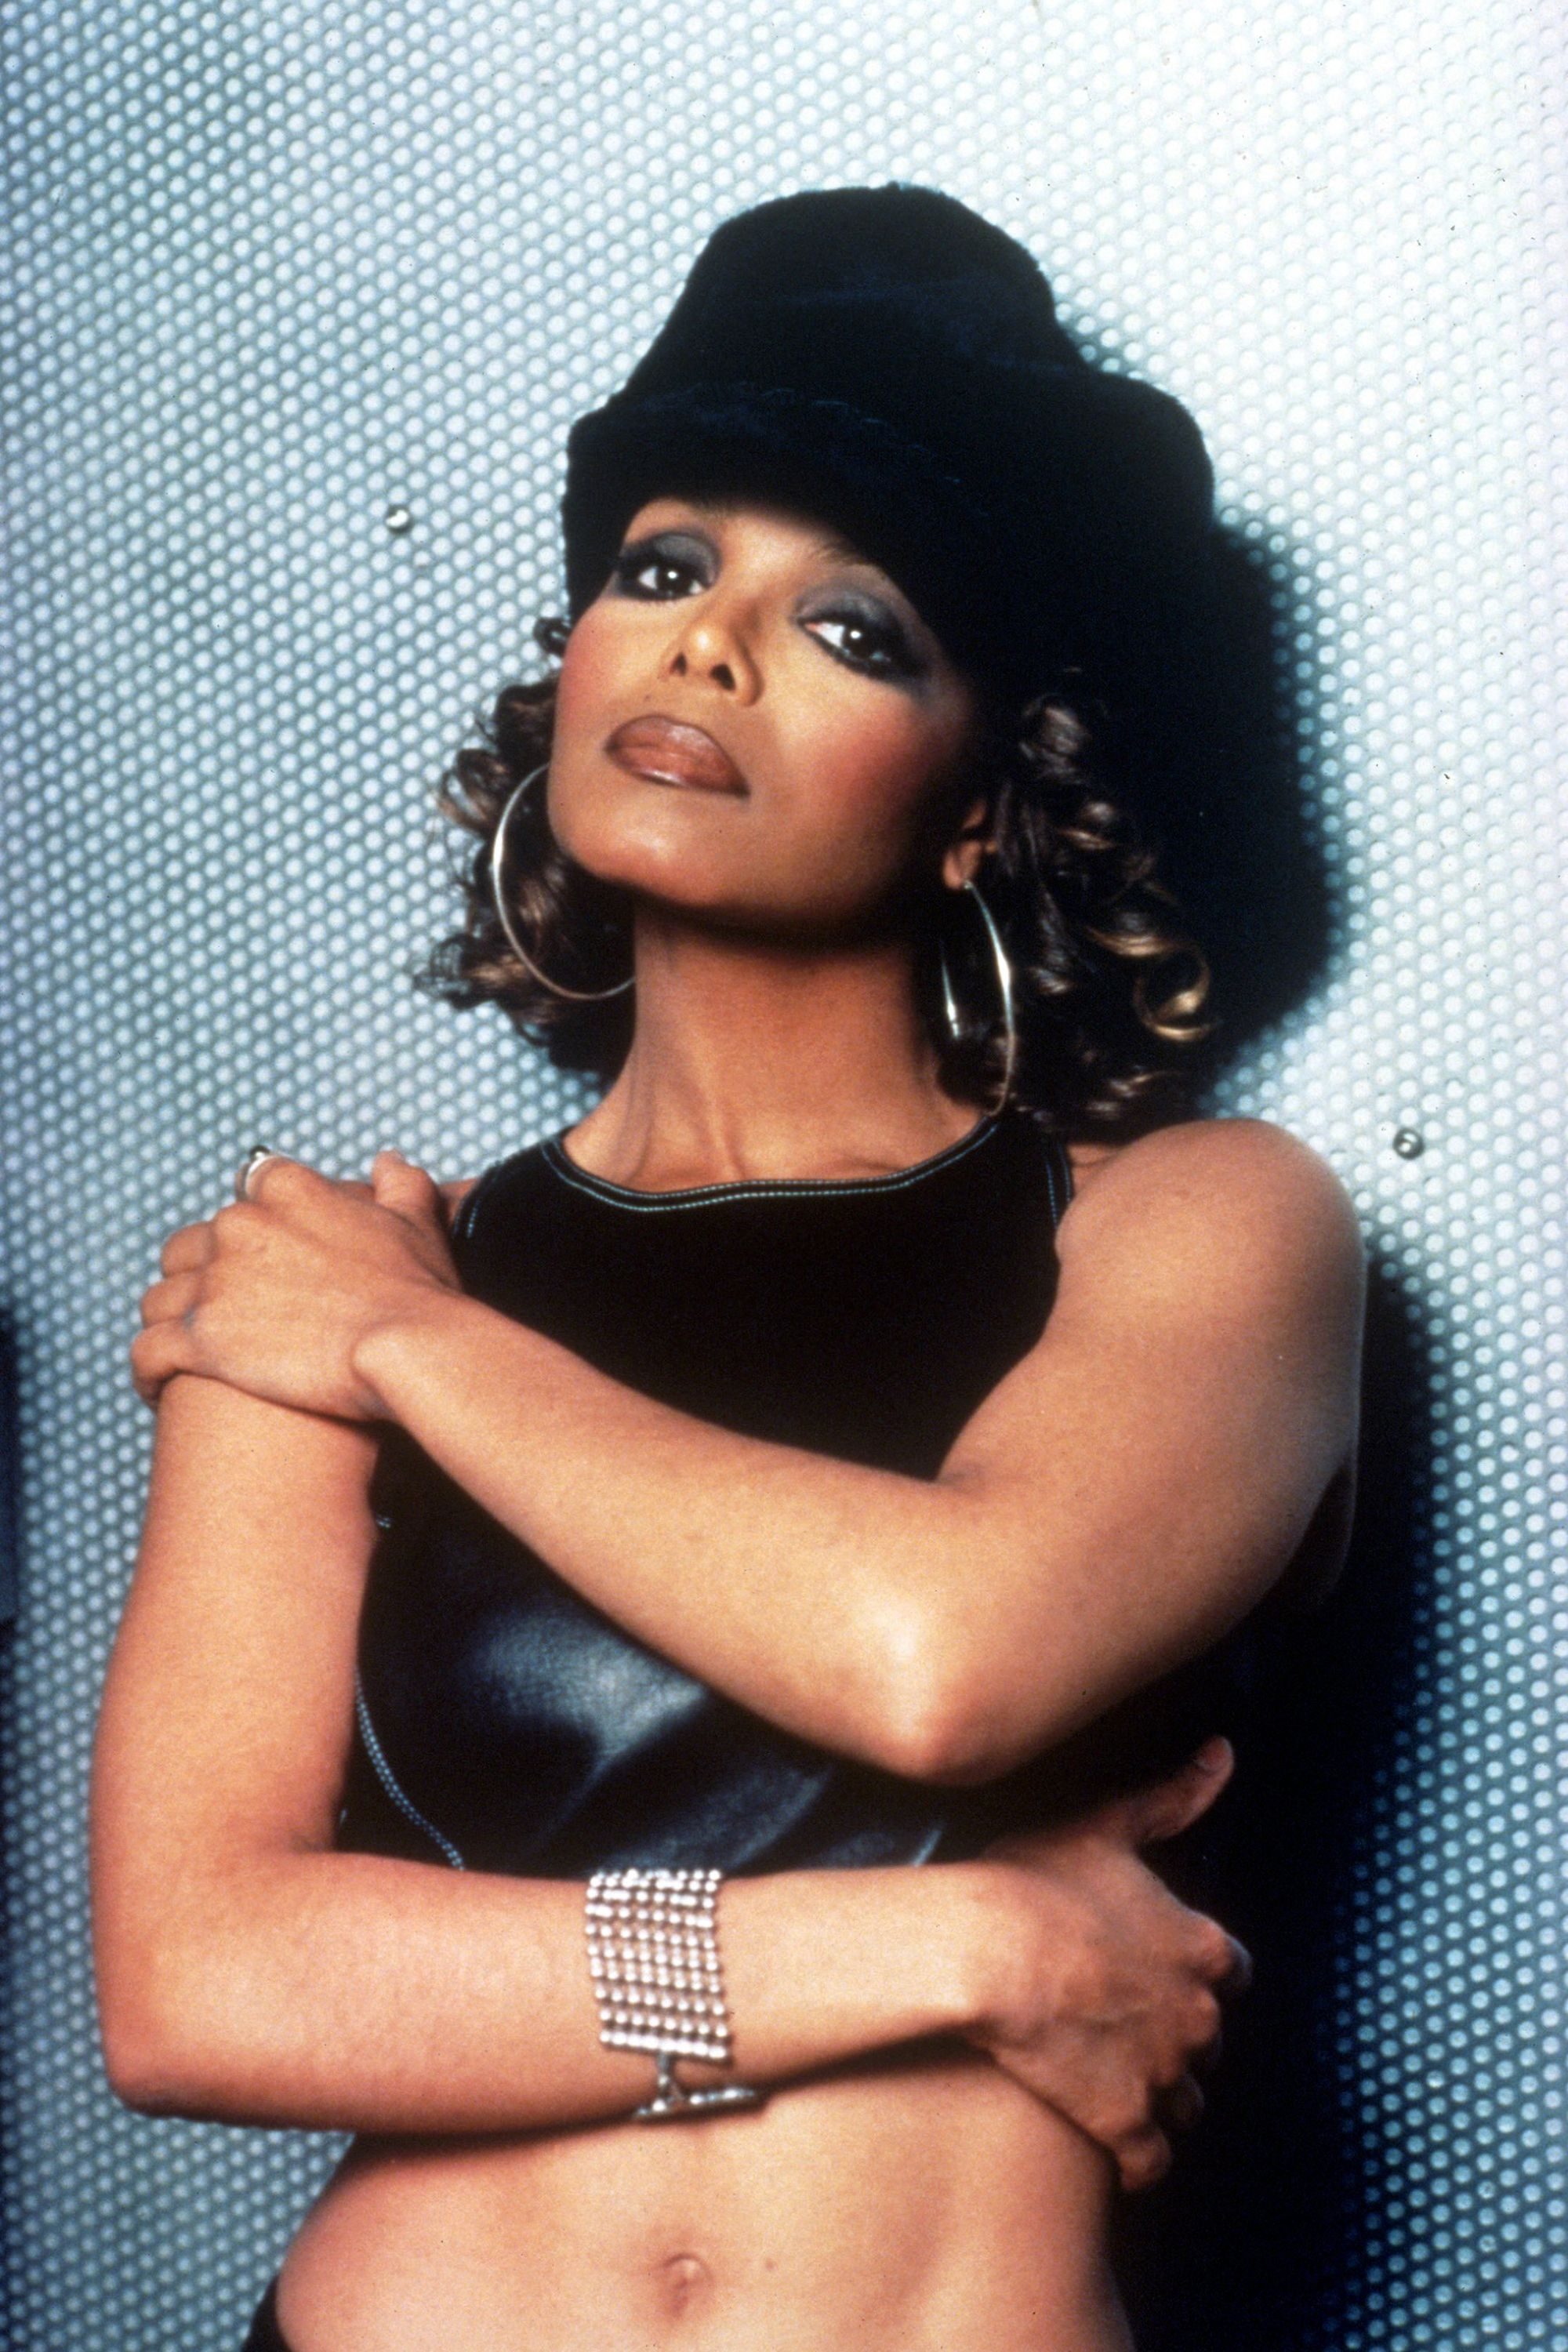 Janet Jackson Turns 50 Years Old - Janet Jackson Photos and